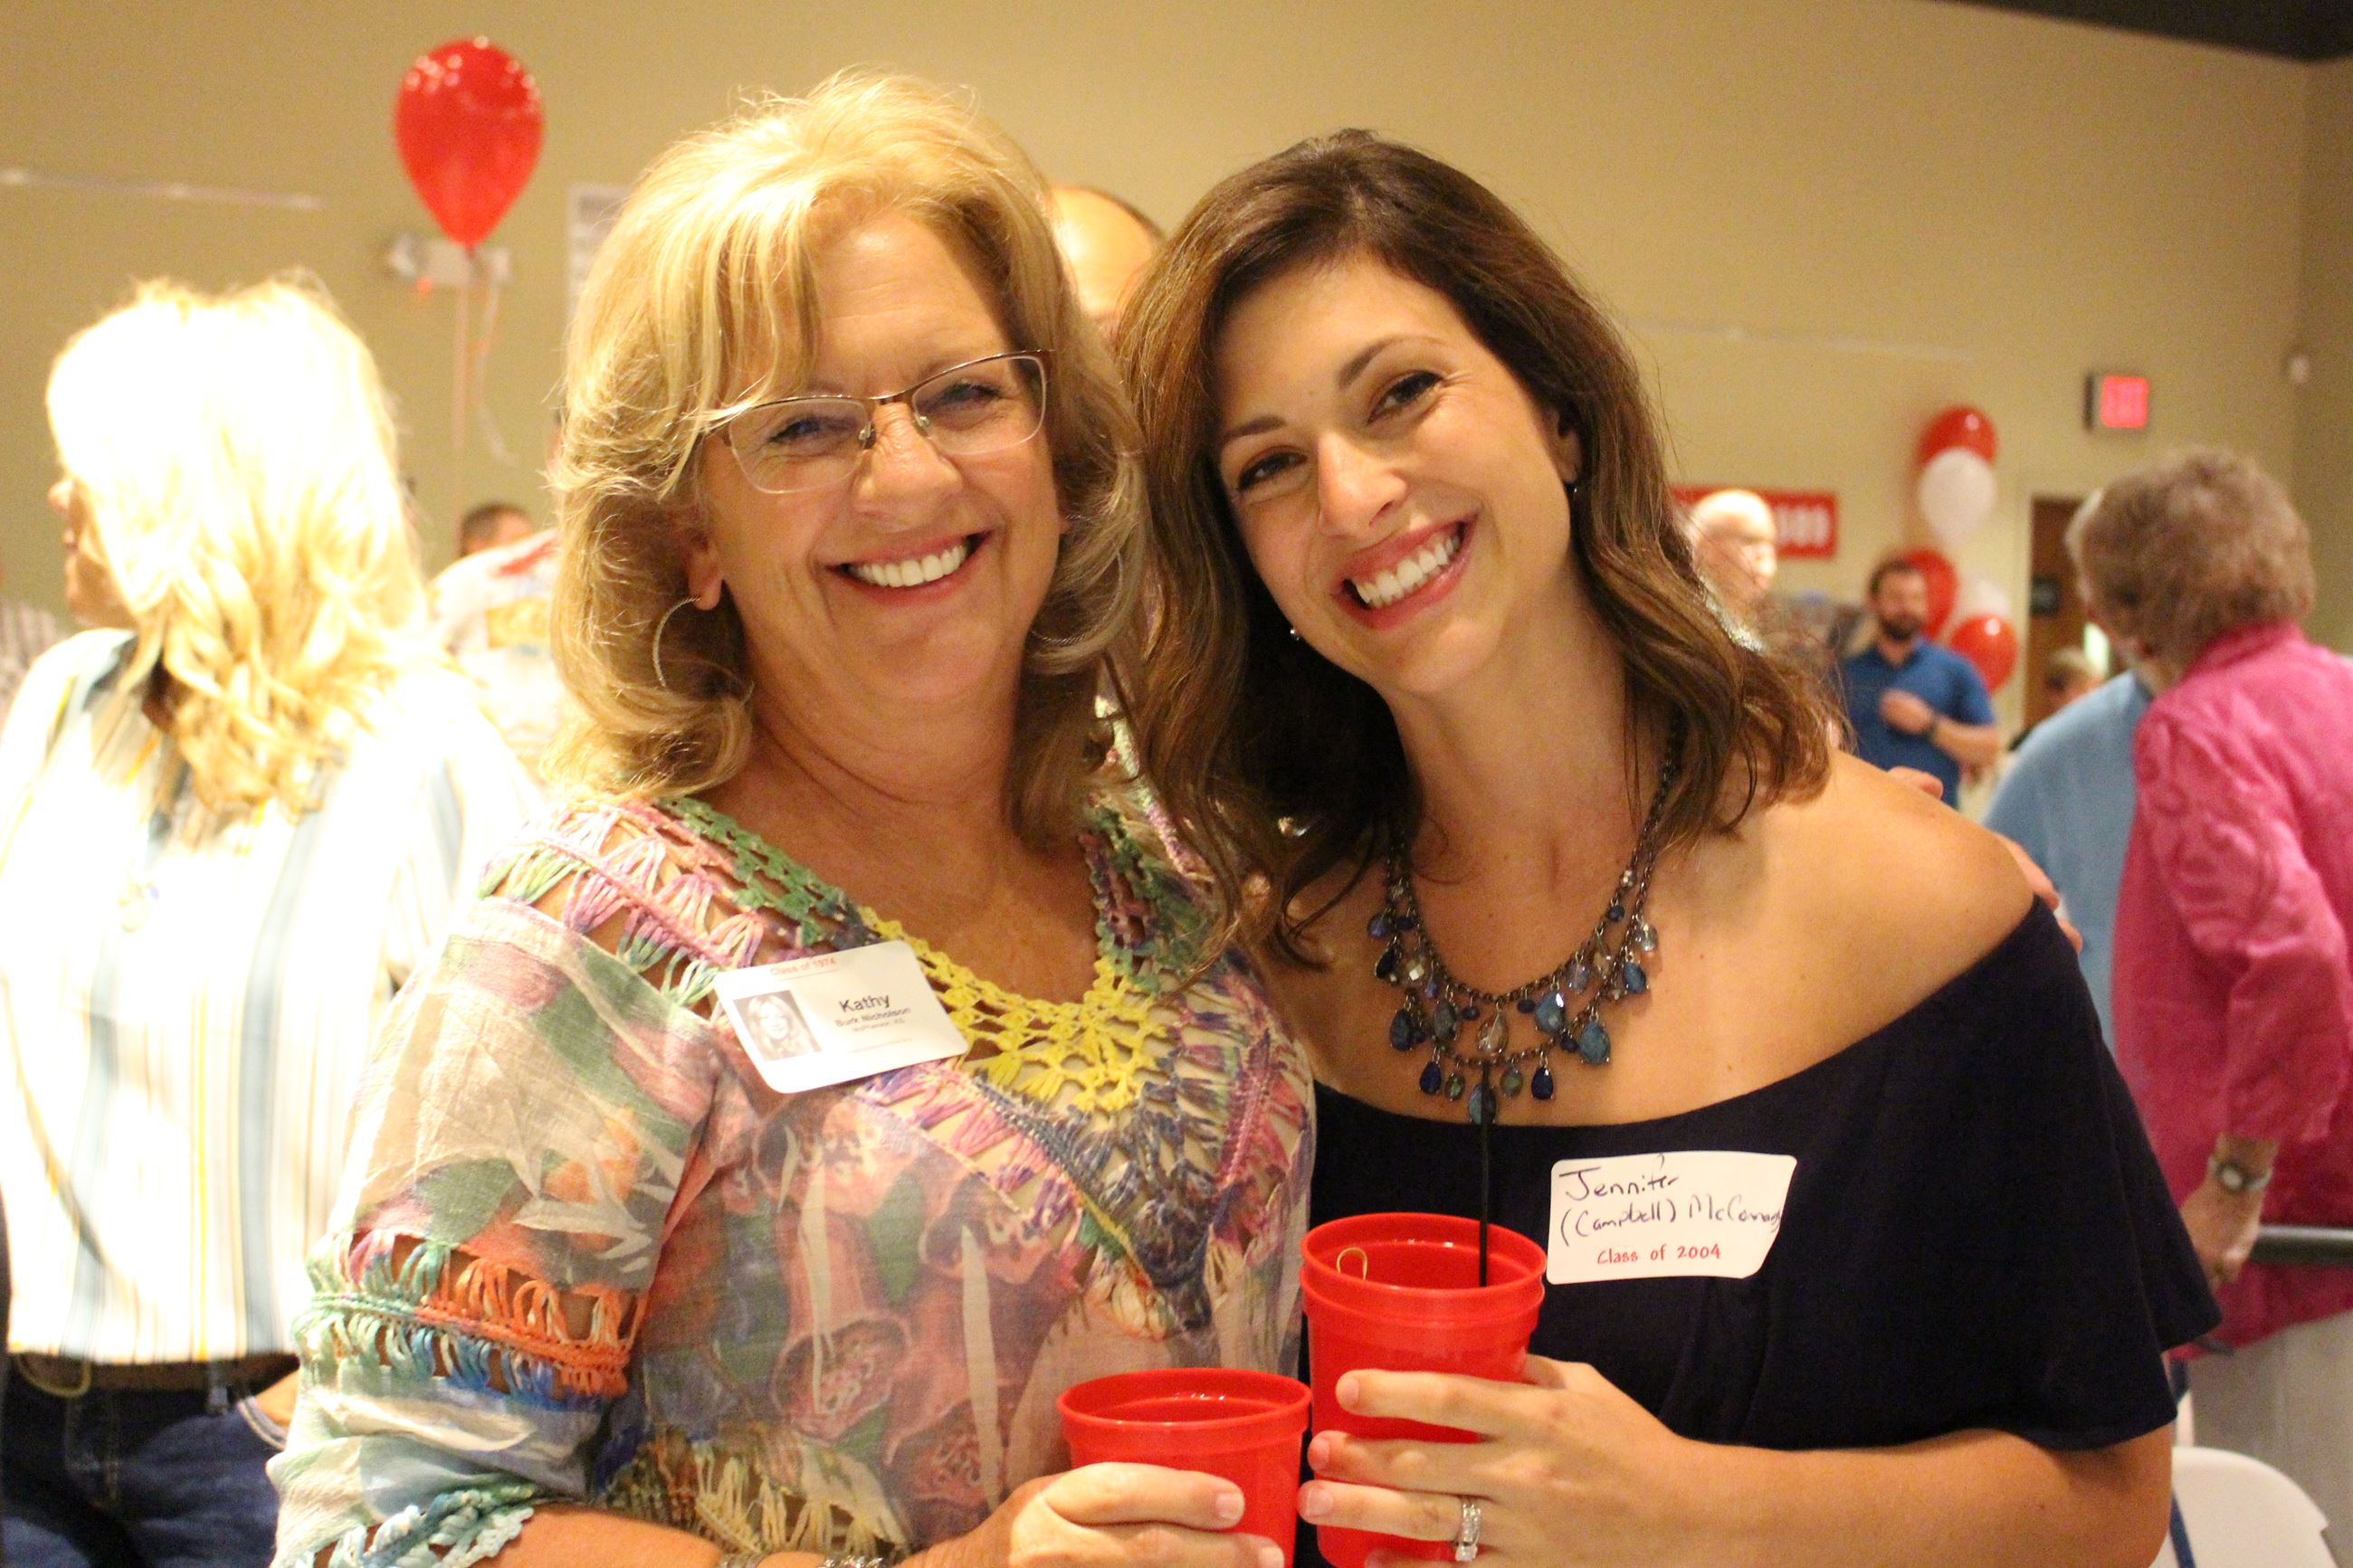 Two women celebrate together at the MHS class reunion